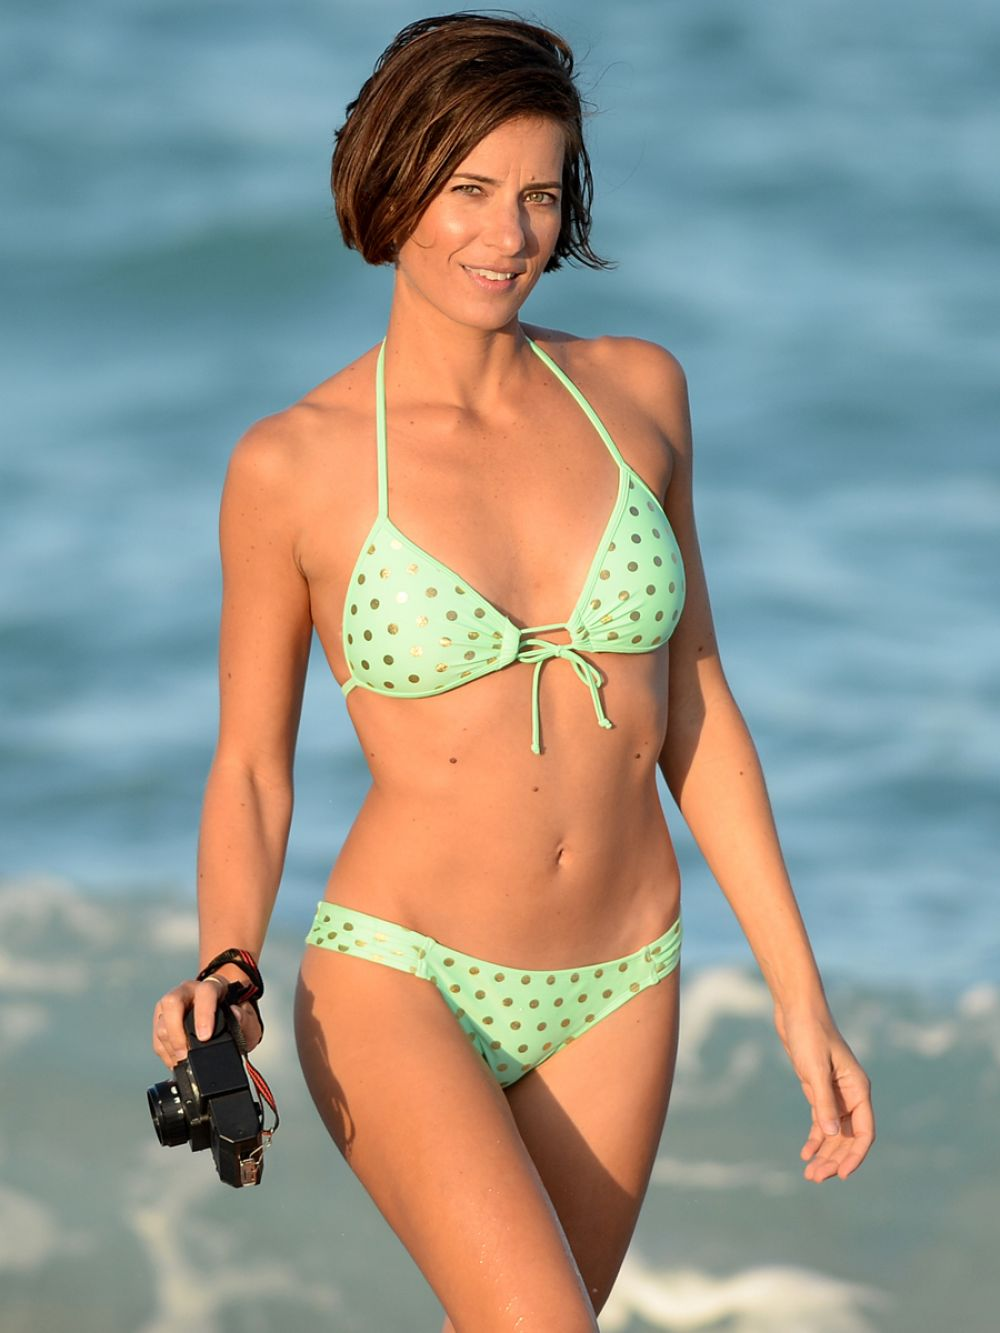 LOGAN FAZIO- Hottest Paparazzo in Bikini at a Beach in Miami